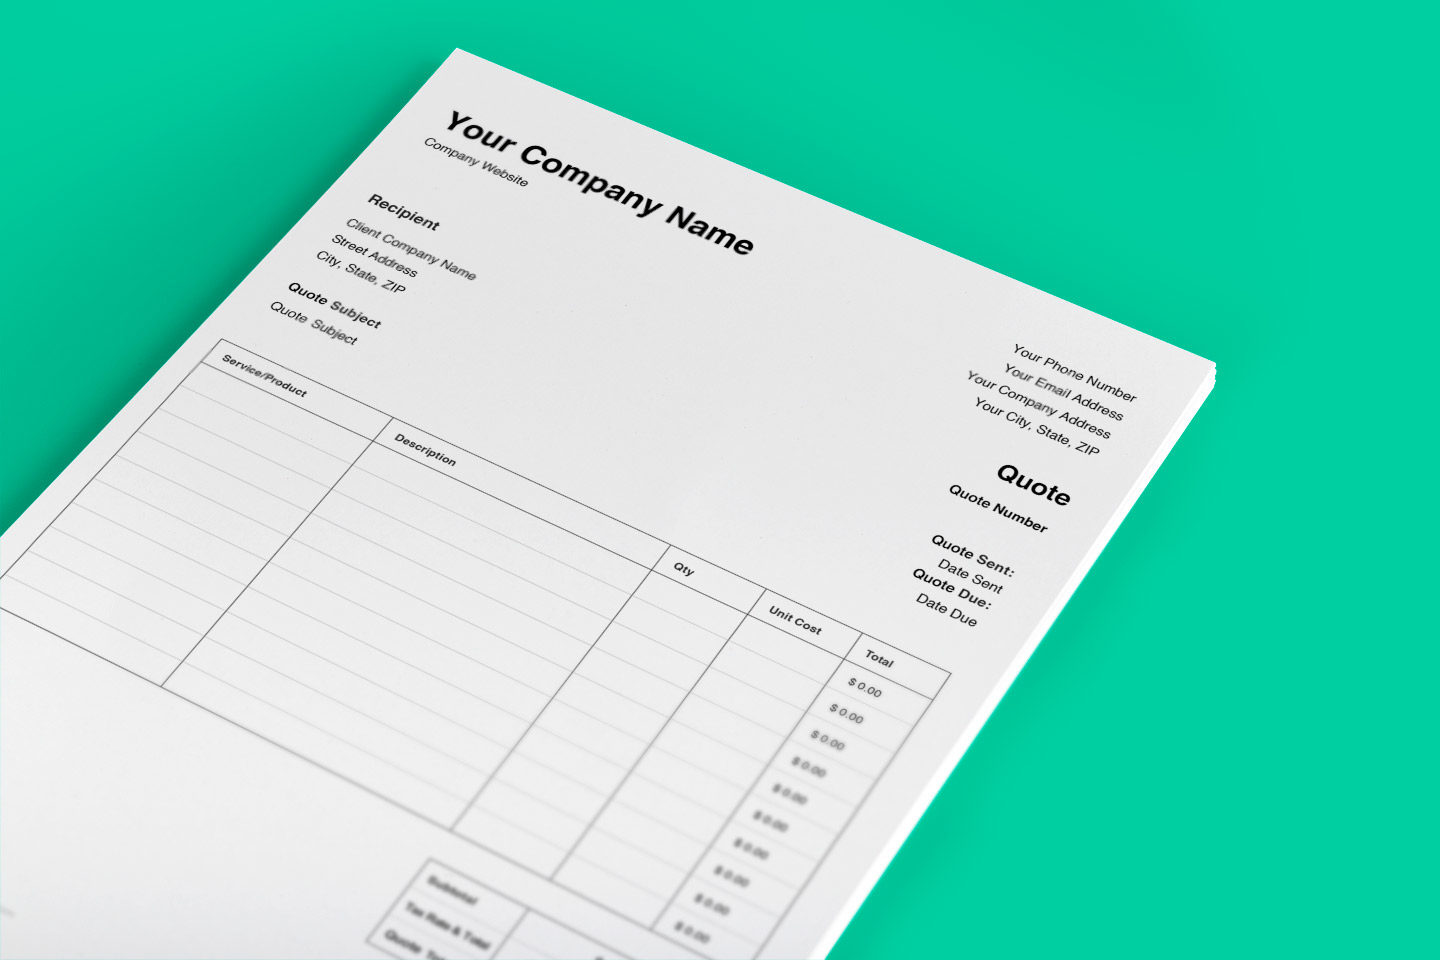 Free quote template. This cost estimate tool can be customized to your business's company name and other details.